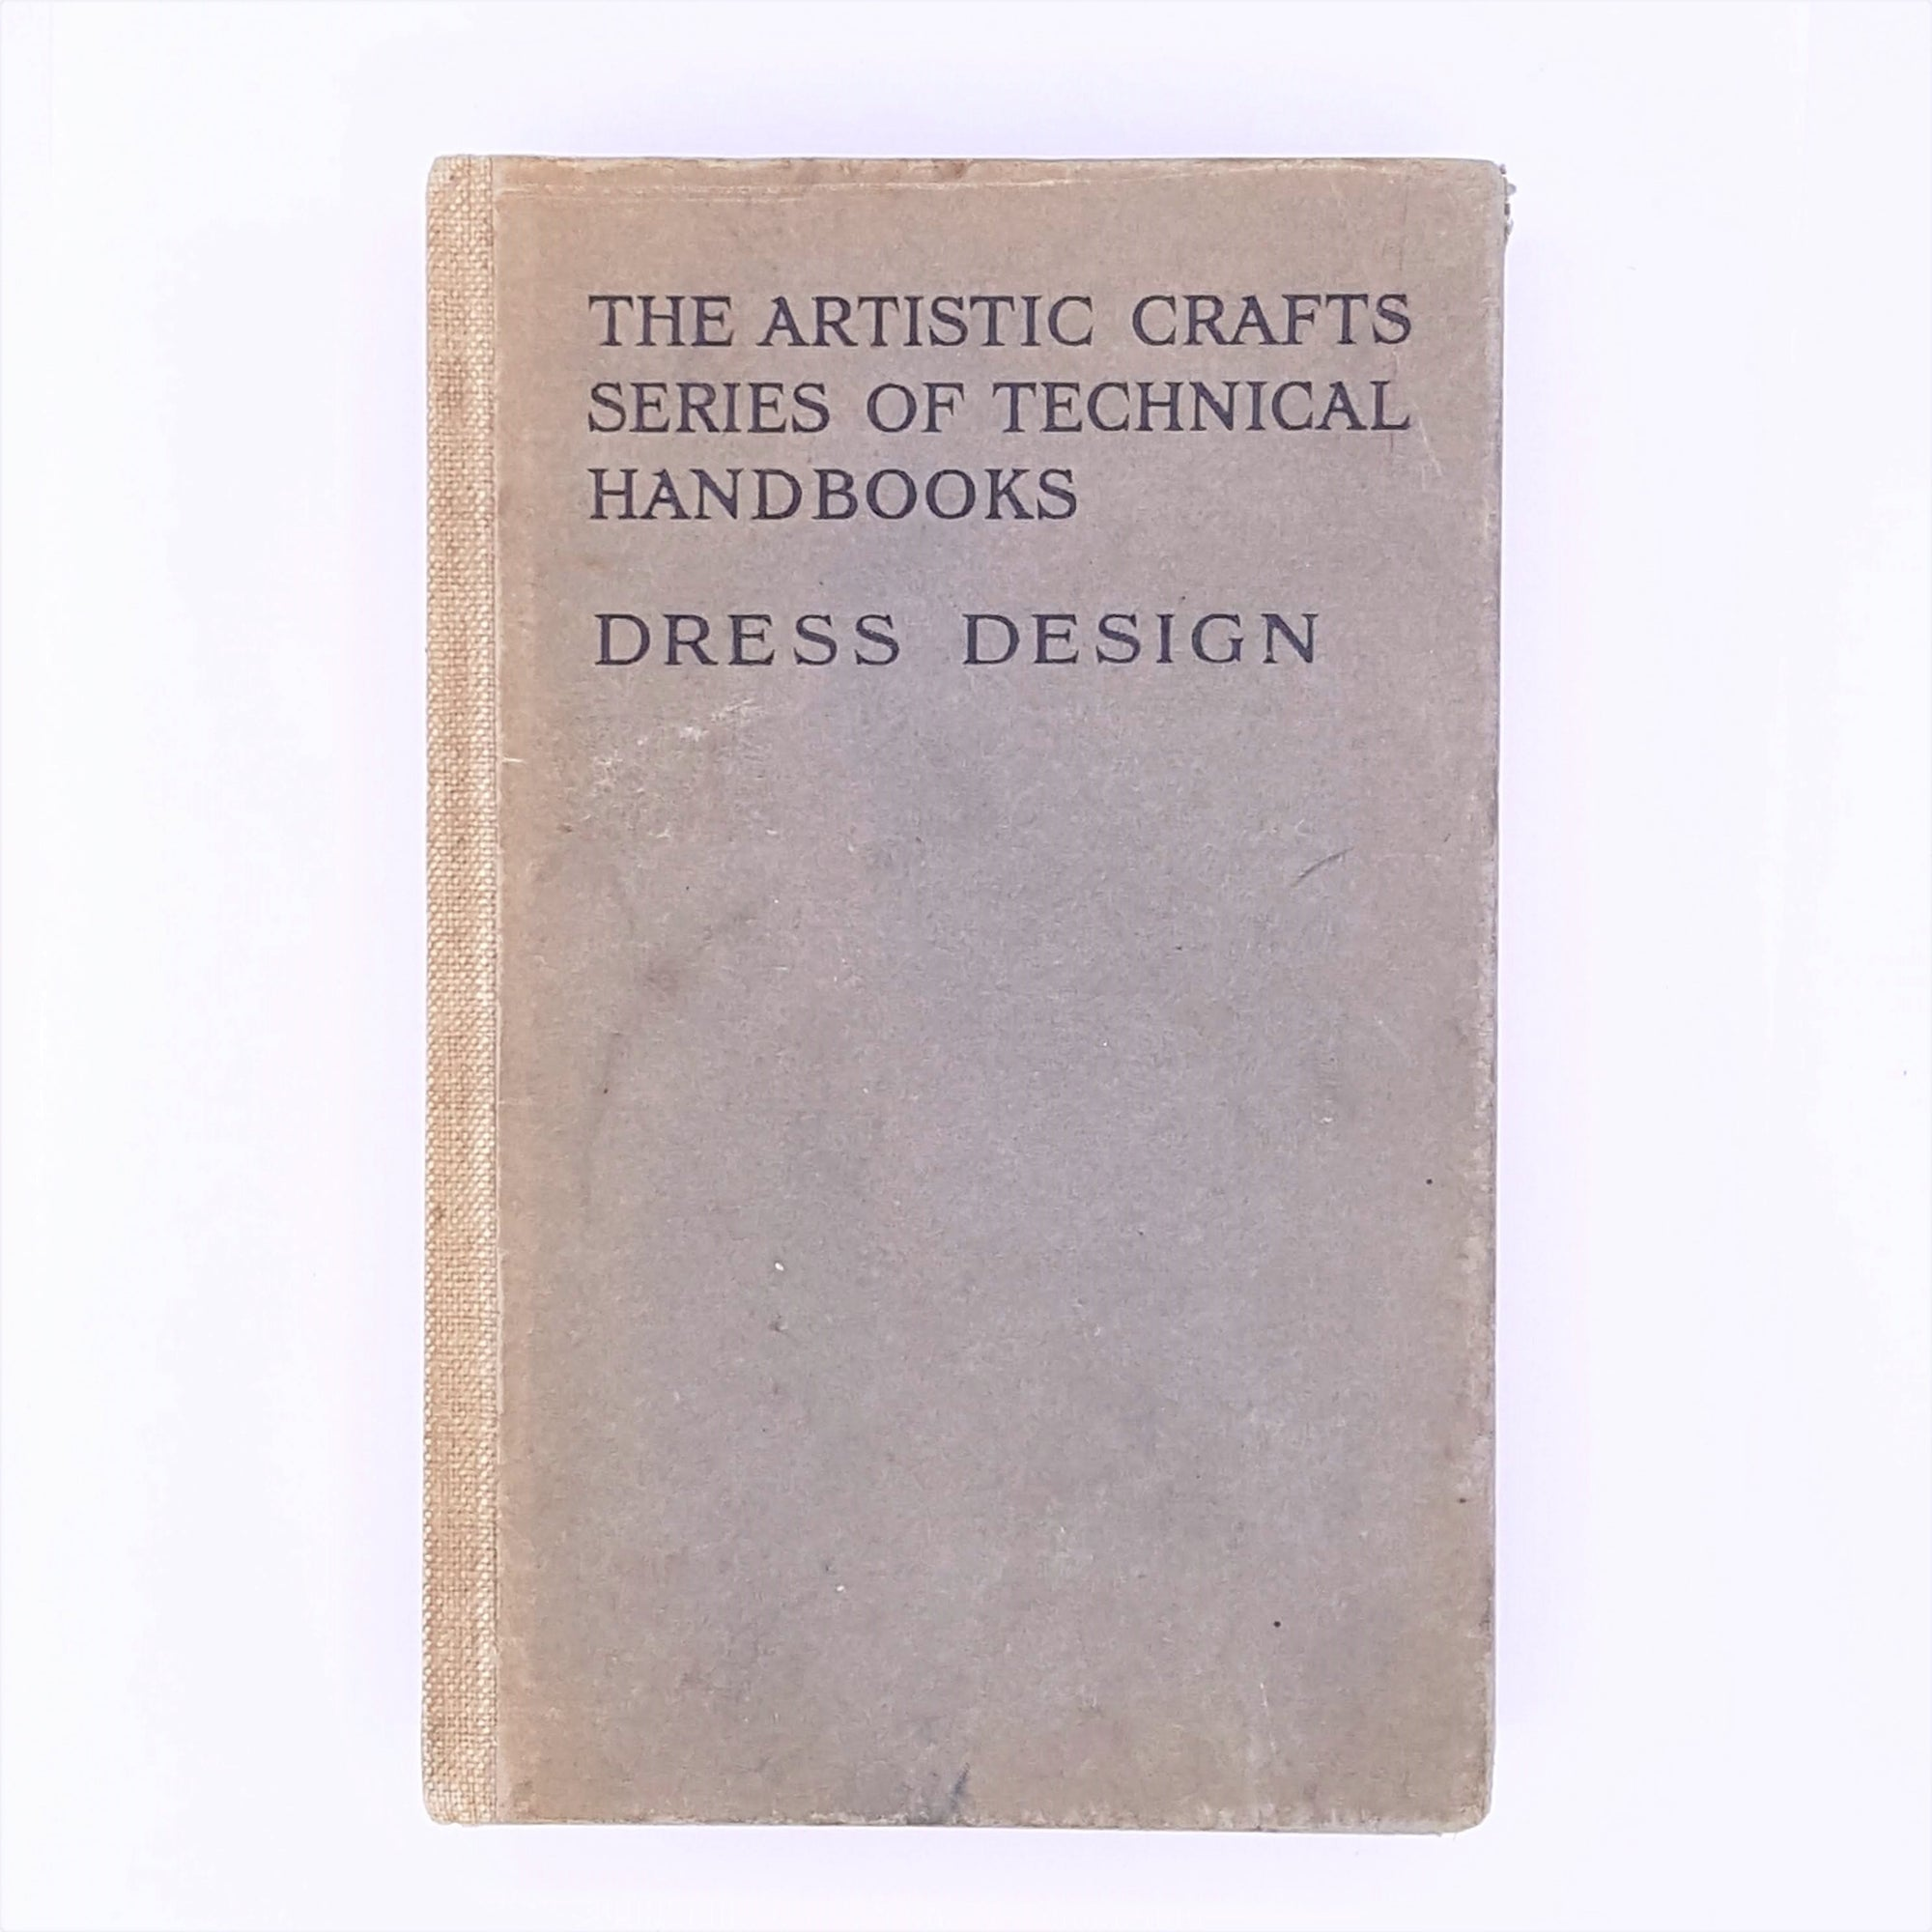 The Artistic Crafts Series of Tehnical Handbooks: Dress Design 1913